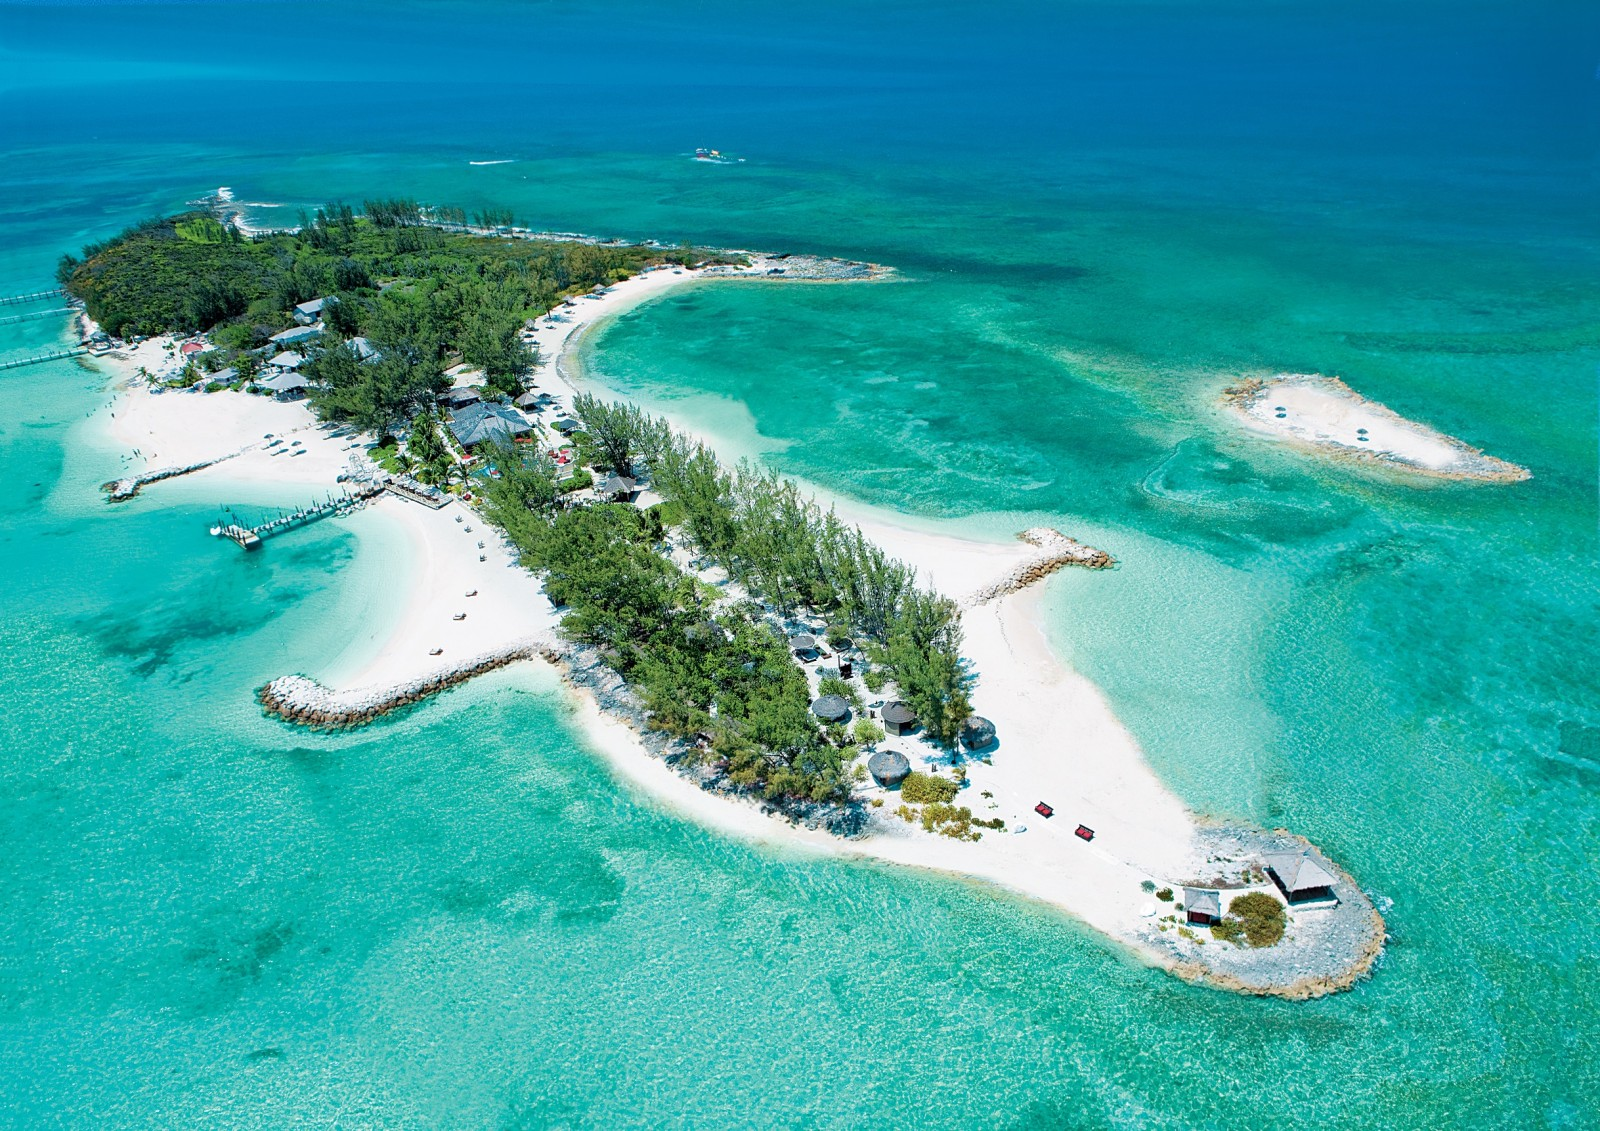 bahamas Sandals Royal Bahamian Private Island main image